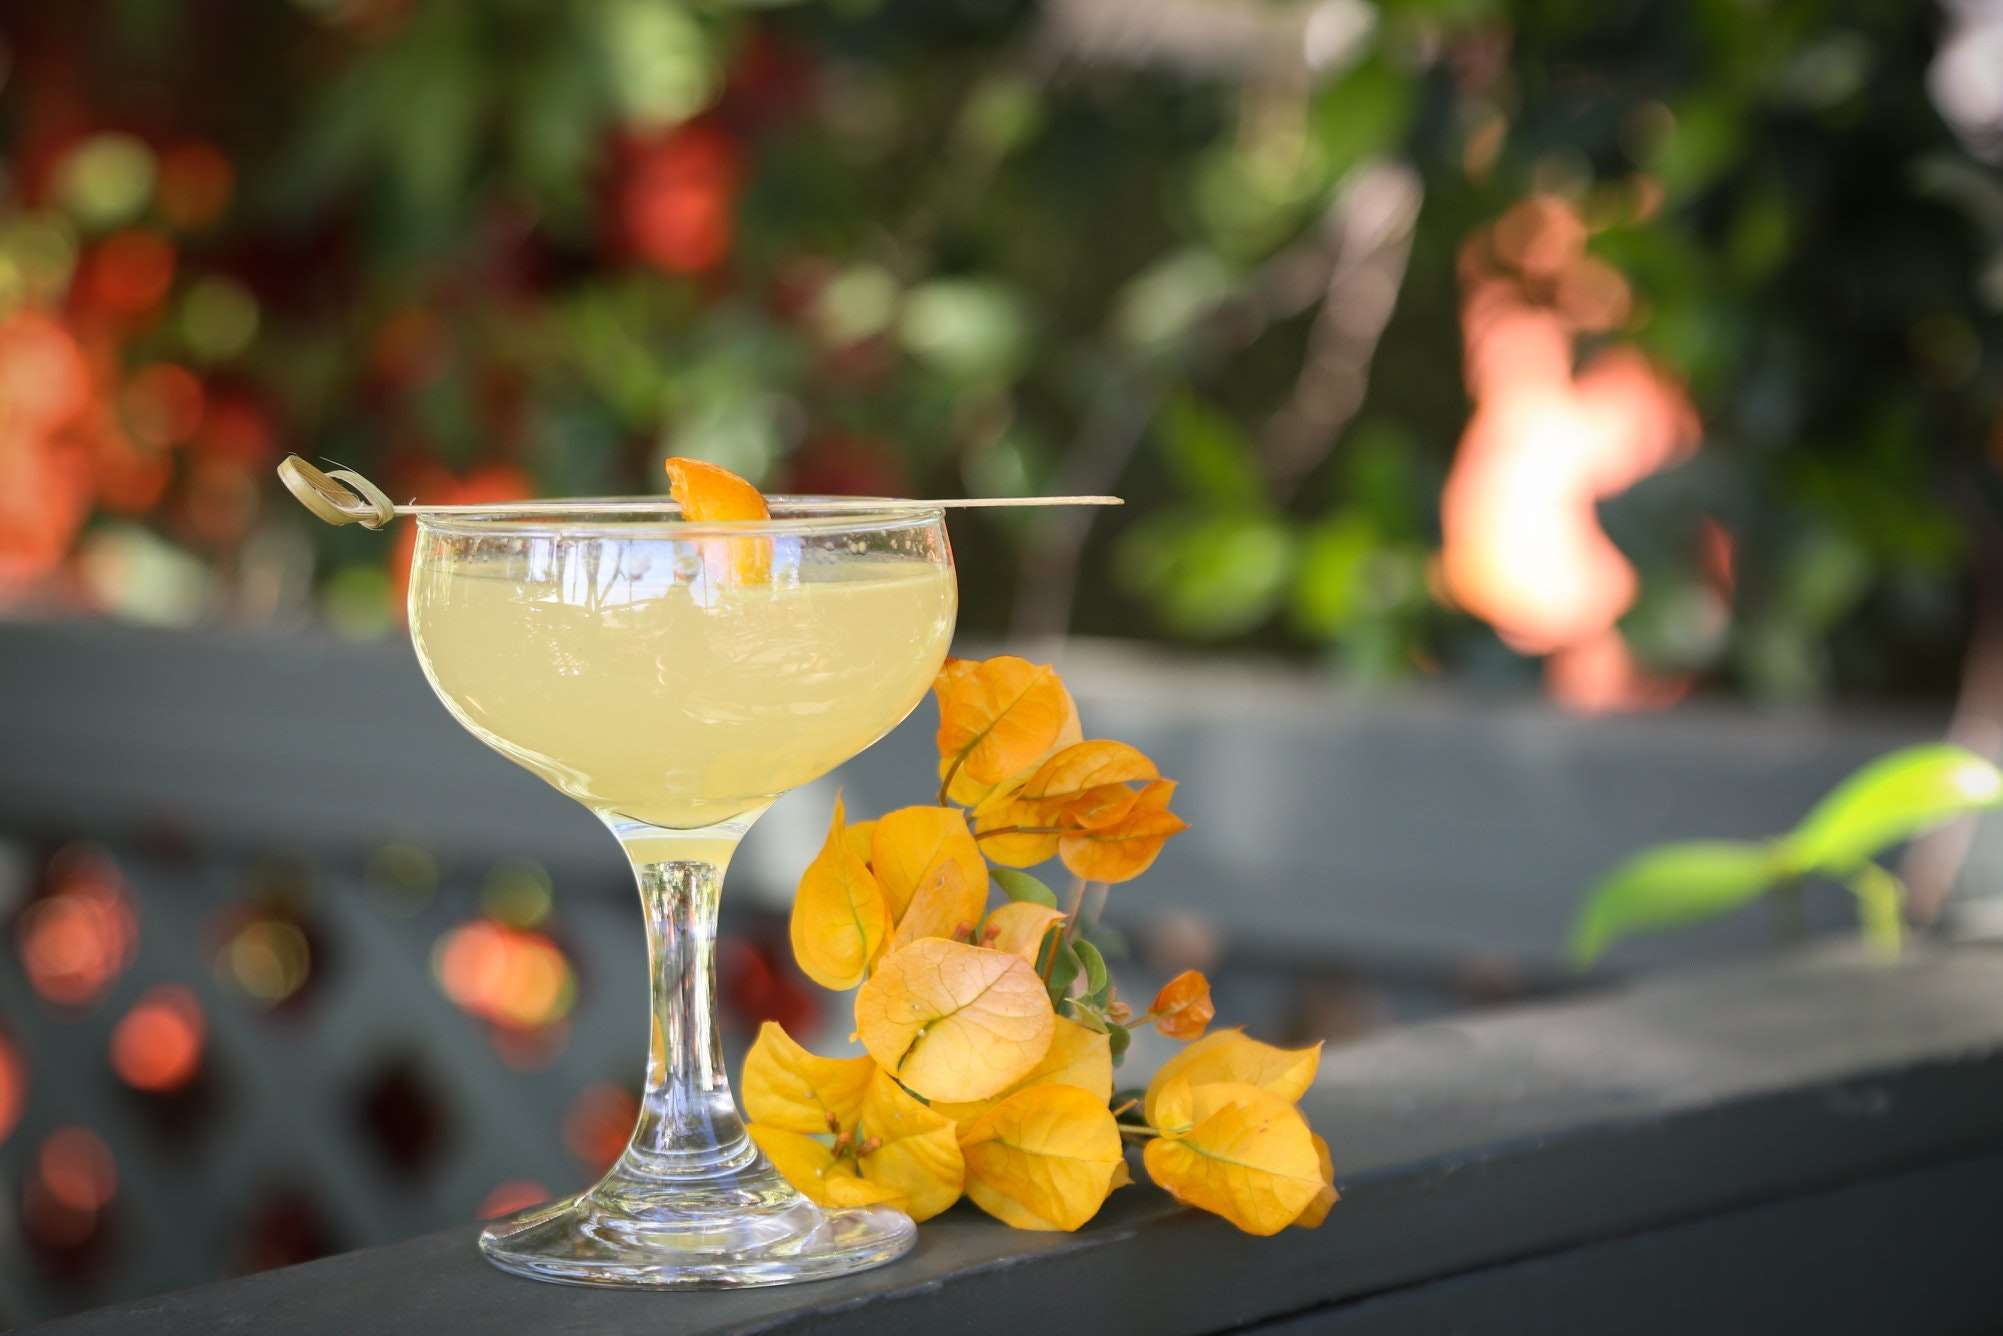 The No Sweet Without the Sour, a summery mix of vodka and kumquat from L.A.'s Big Bar